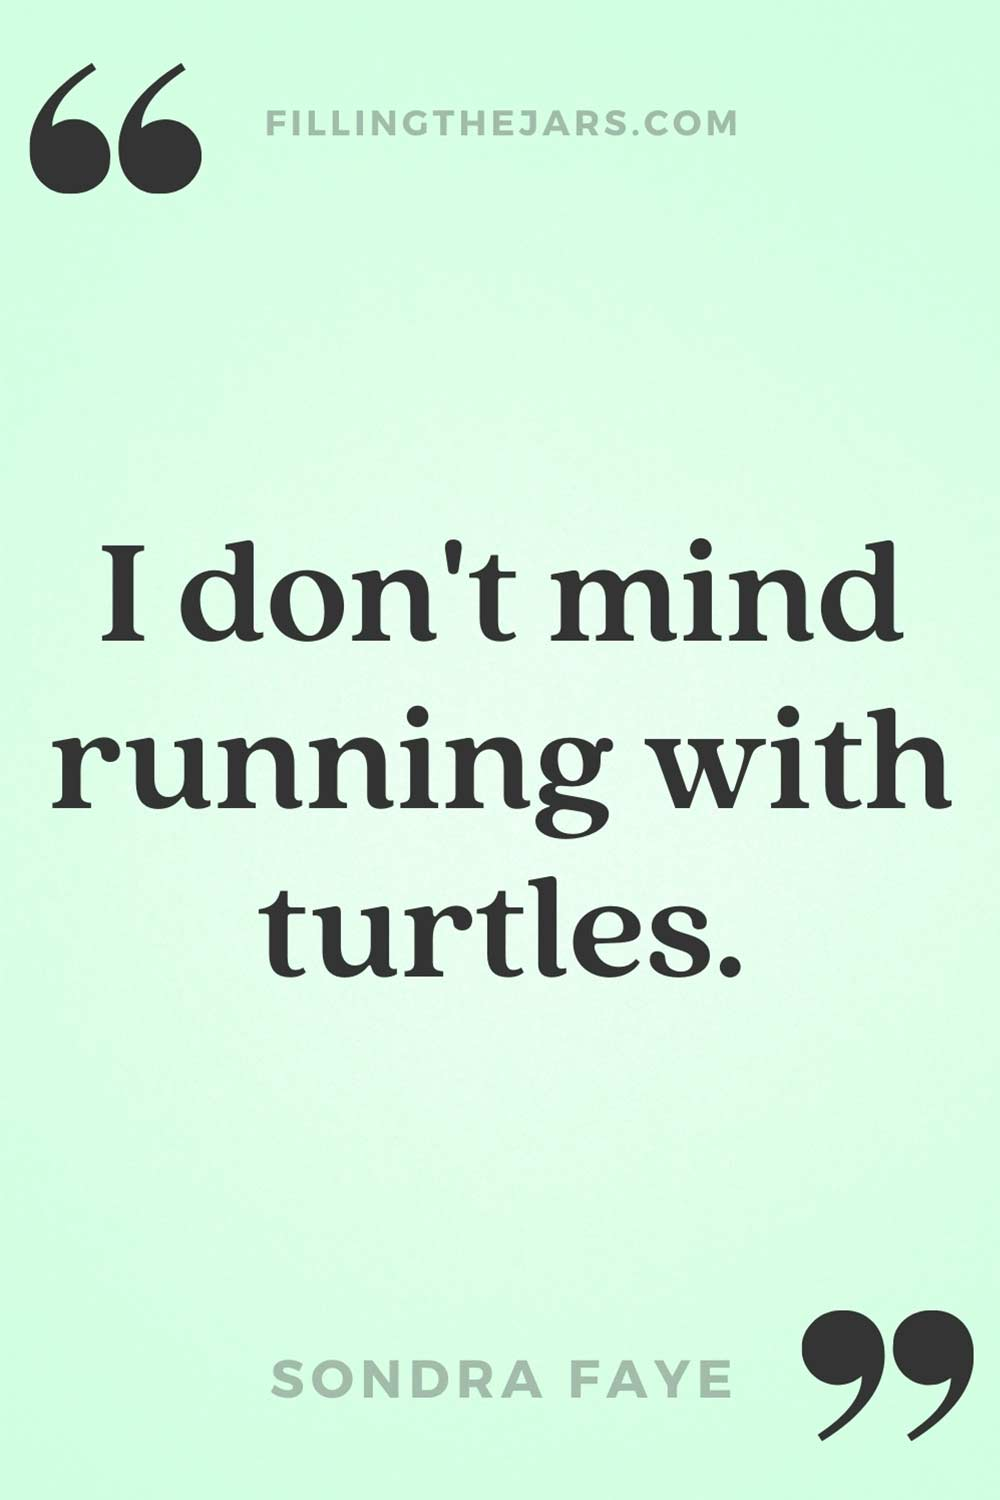 Sondra Faye running with turtles slow and steady quote in black text on pale green background.